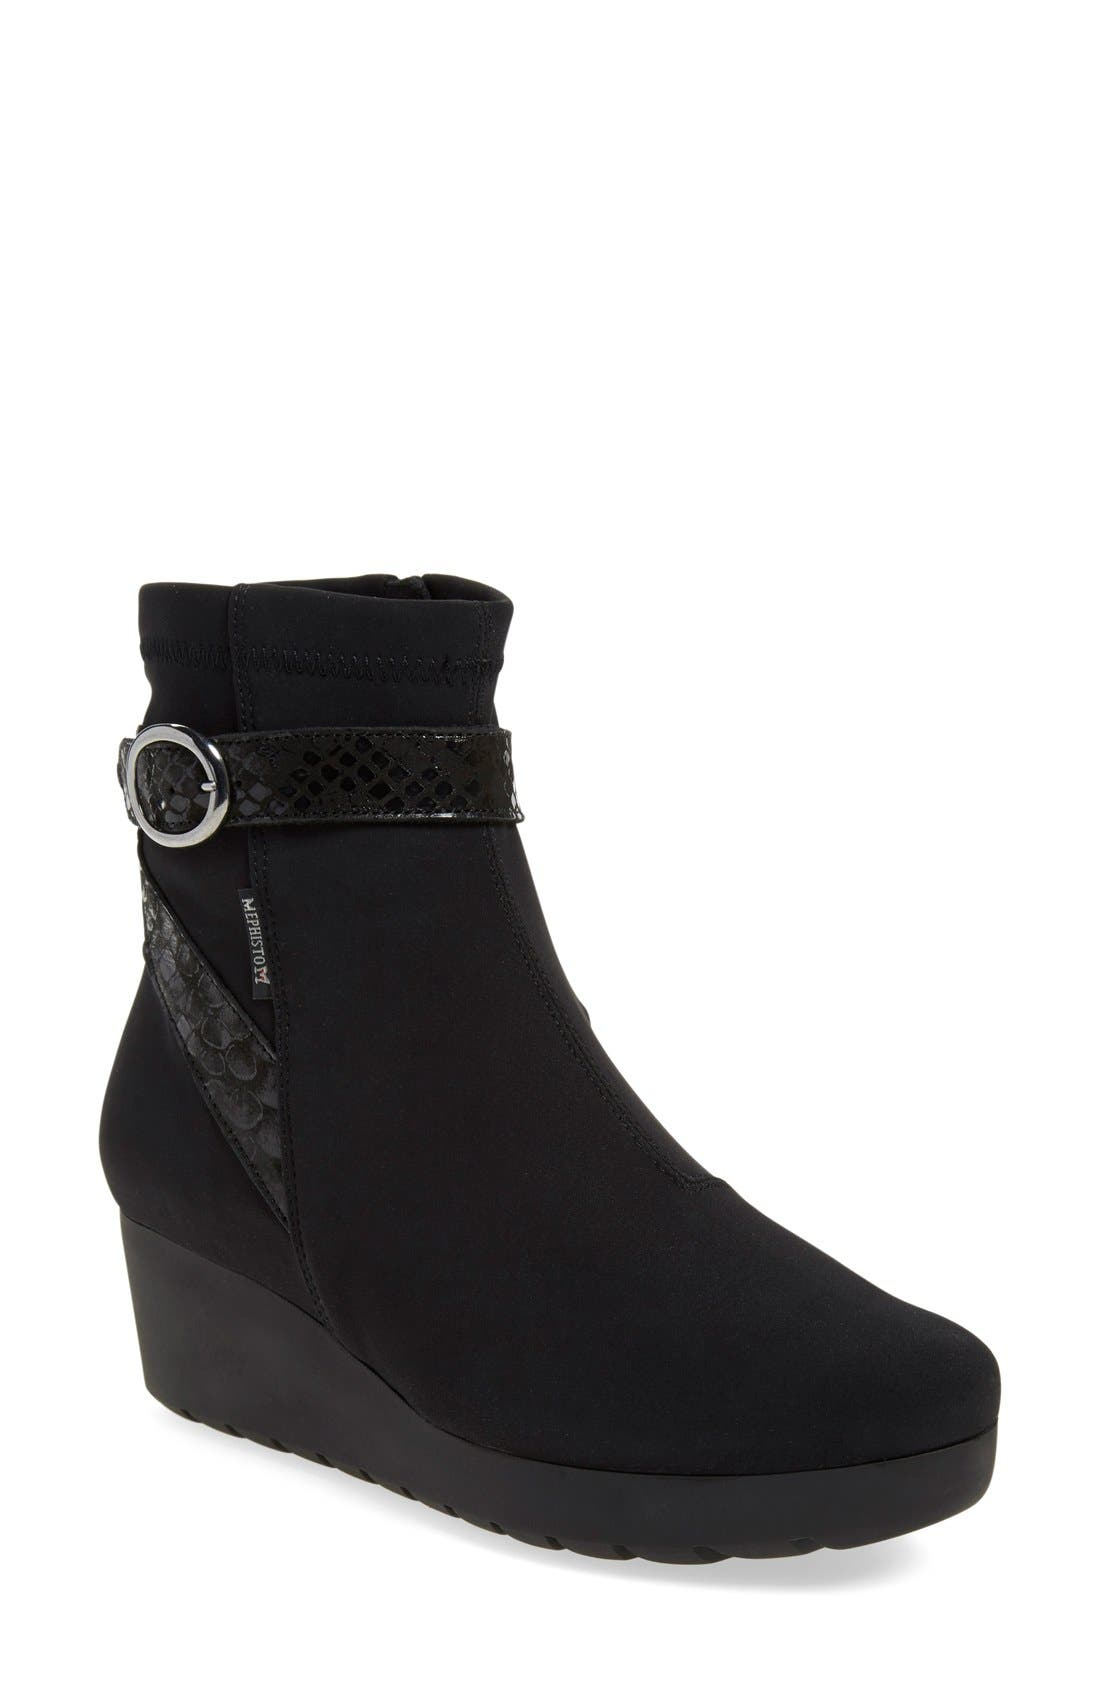 Main Image - Mephisto 'Tyba' Waterproof Wedge Bootie (Women)